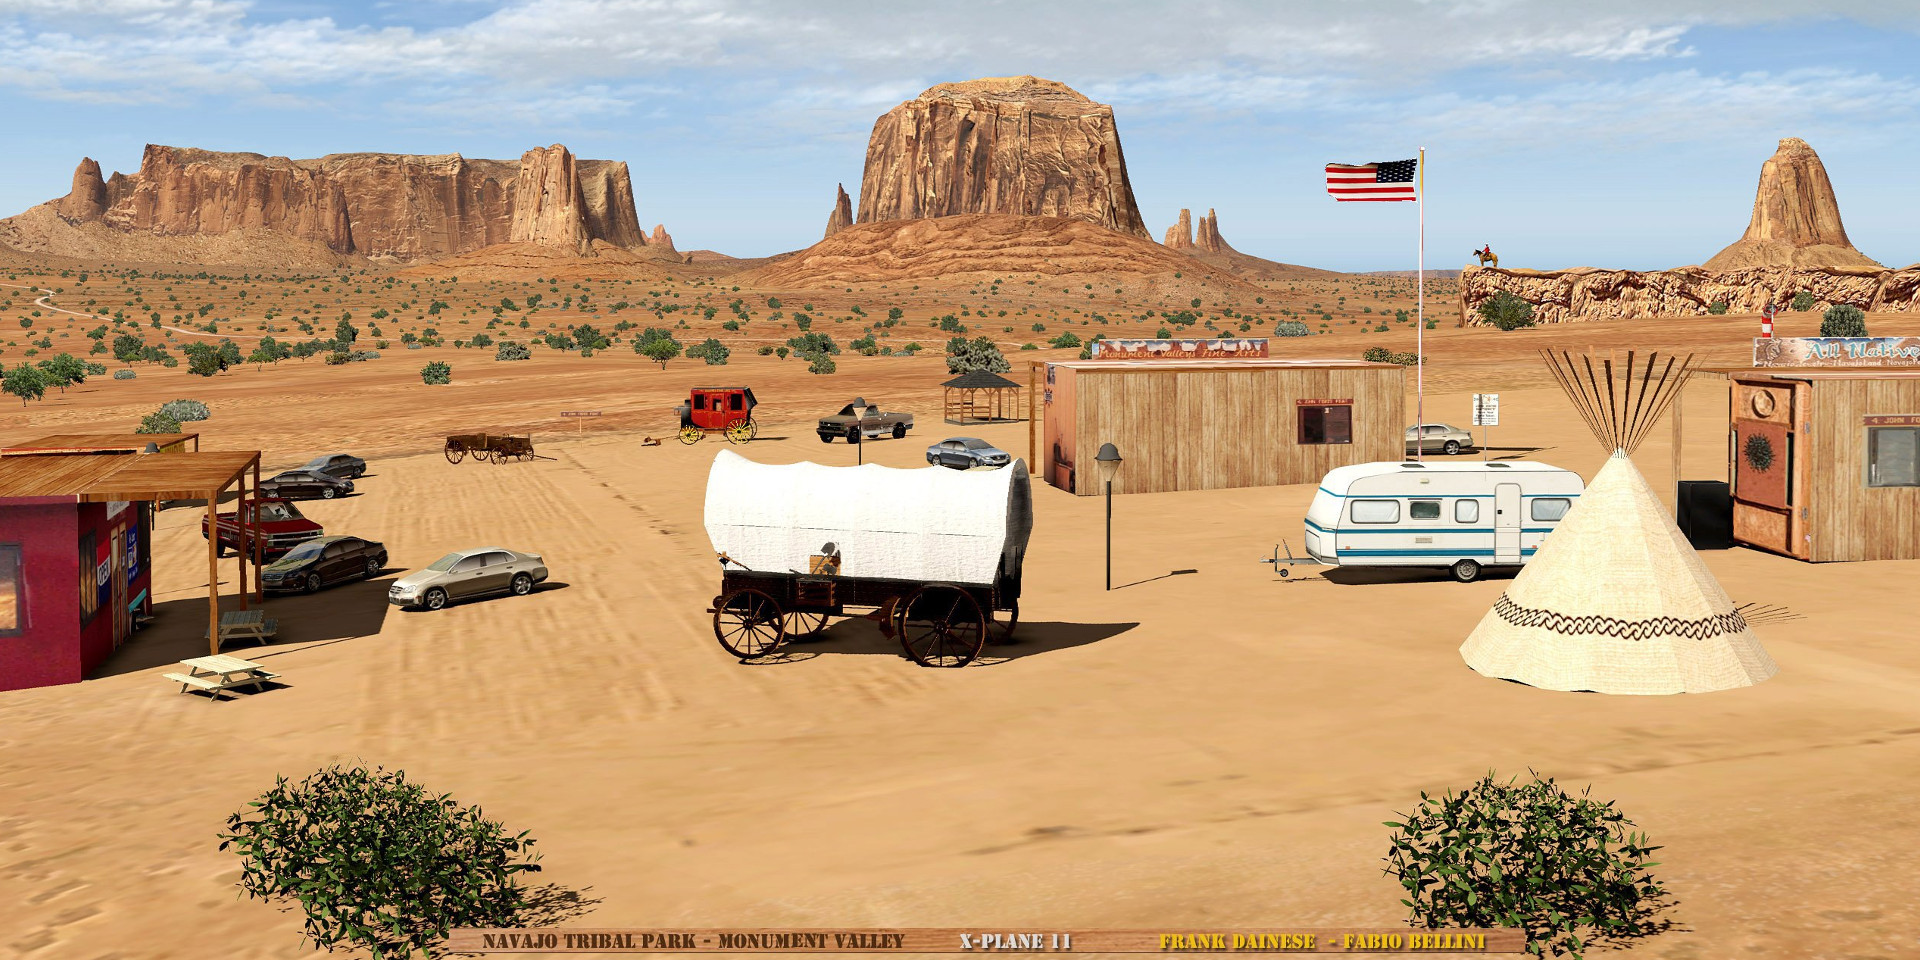 Frank Dainese Monument Valley X-Plane 11